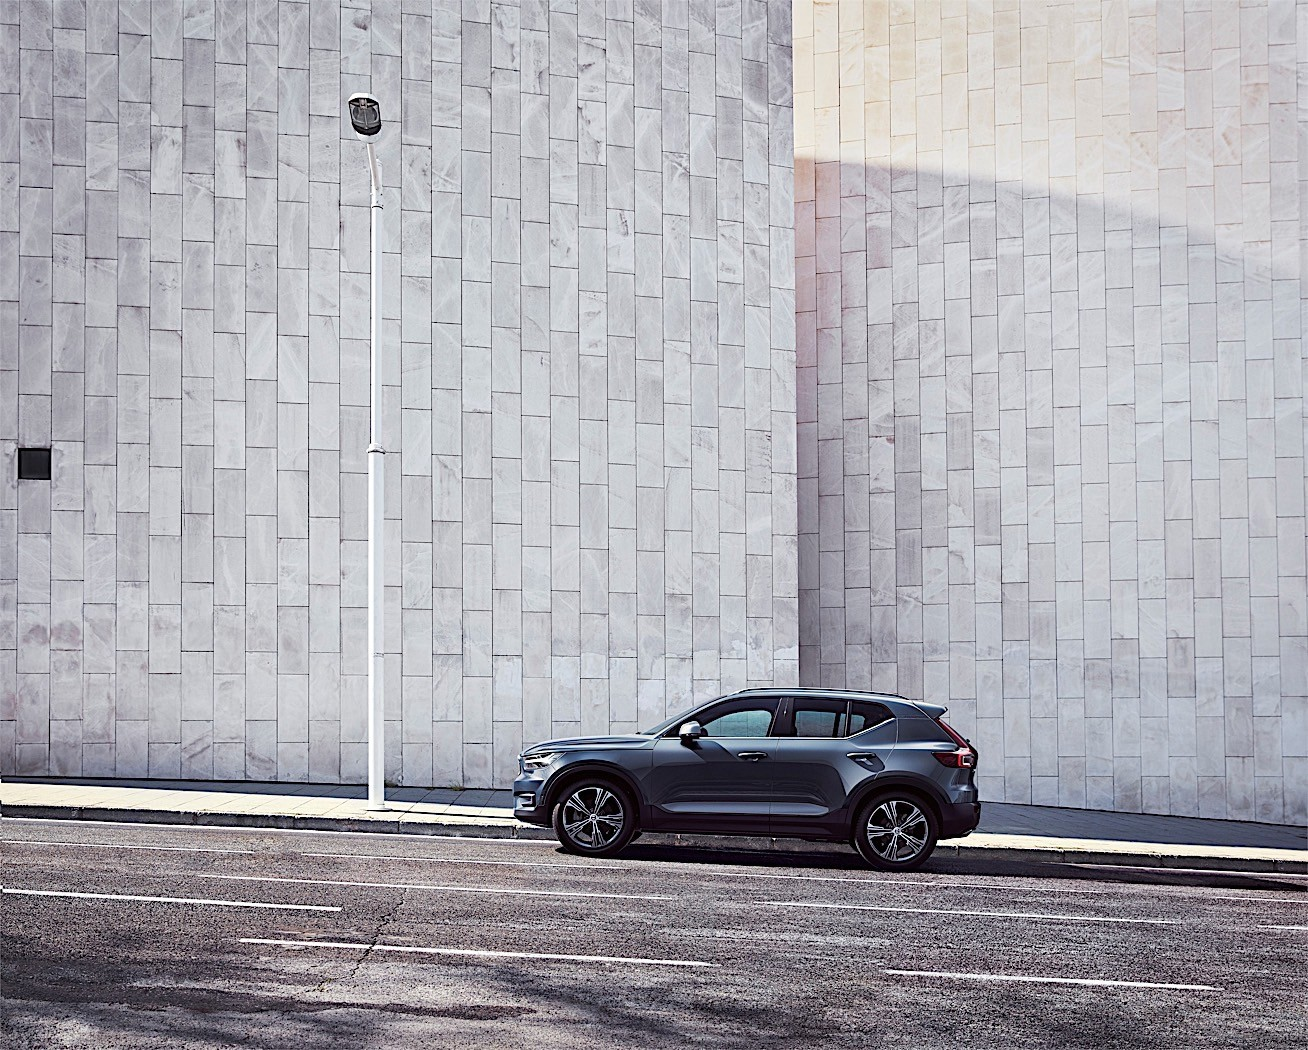 Volvo XC40 T3 1.5 litre Three-Cylinder joins the XC40 range